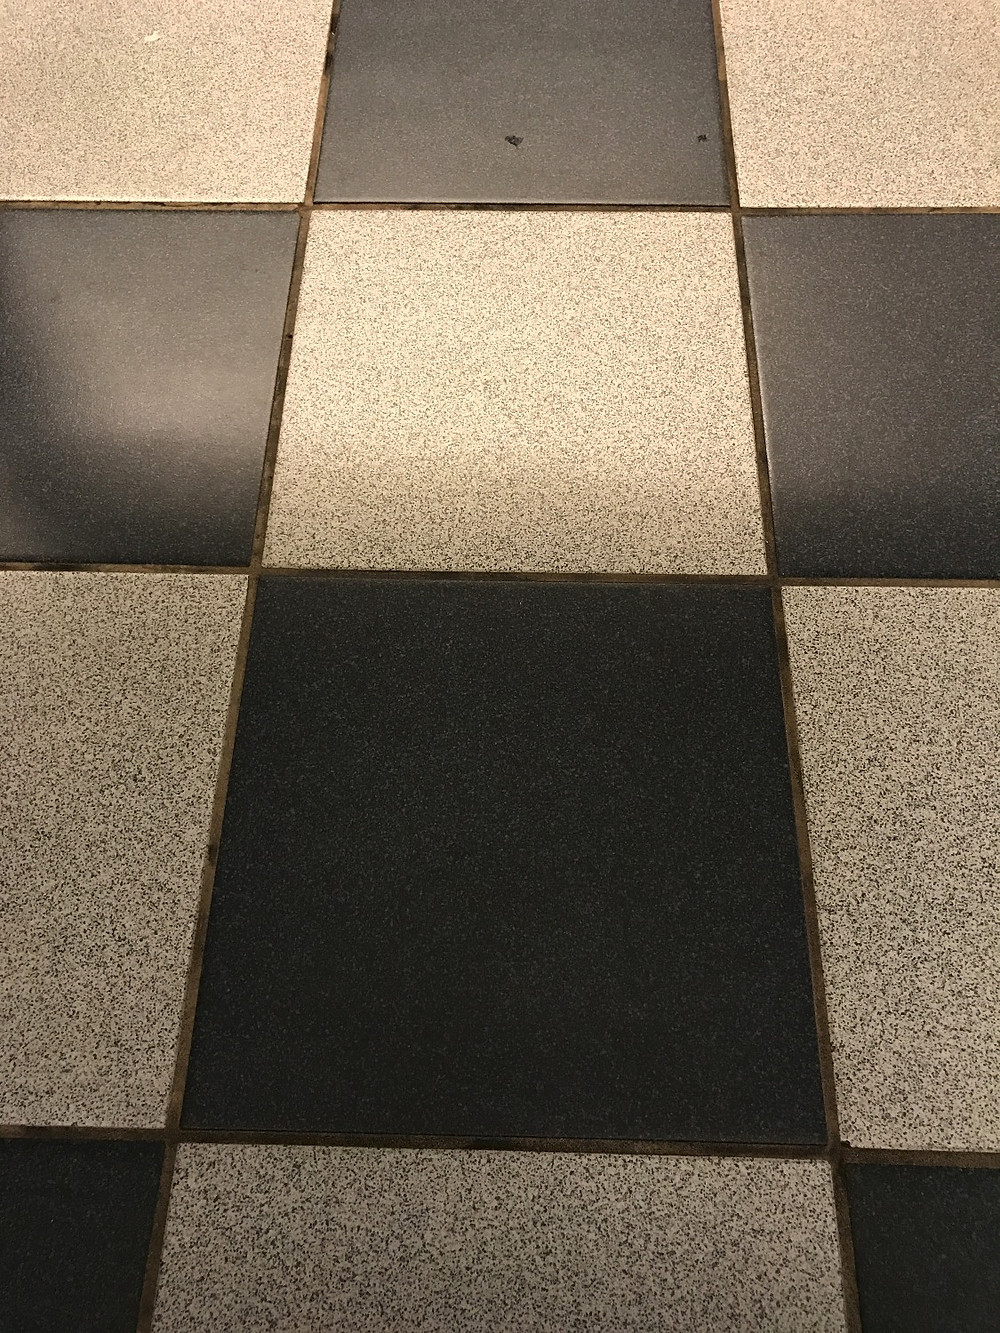 Chessboard Floor Tile, Innoventions West Loo, Epcot